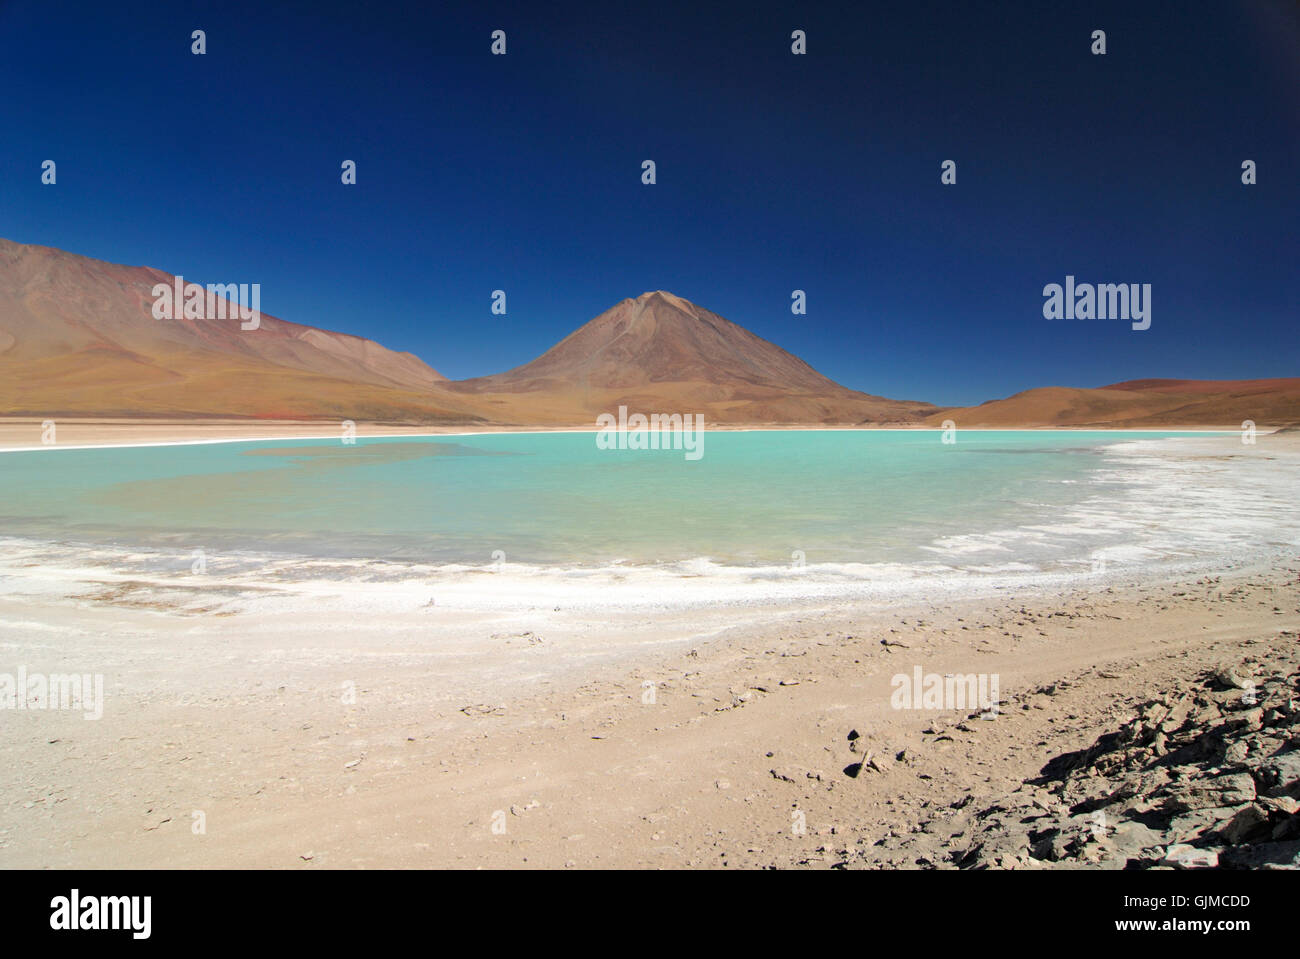 south america turquoise lagoon - Stock Image